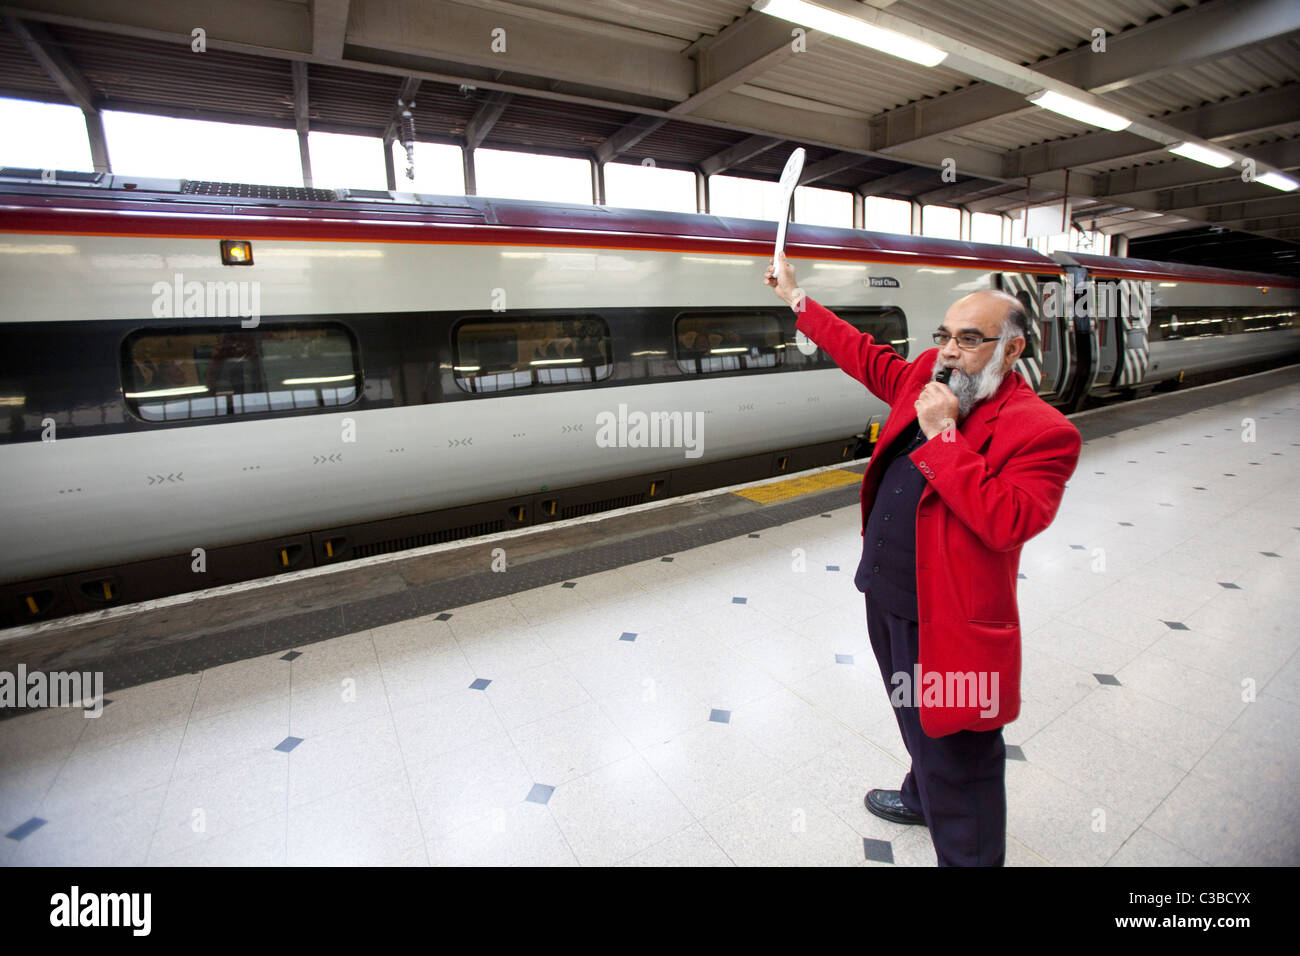 A Virgin Train S Employee At London Euston Station Signals Is Ready For Departure